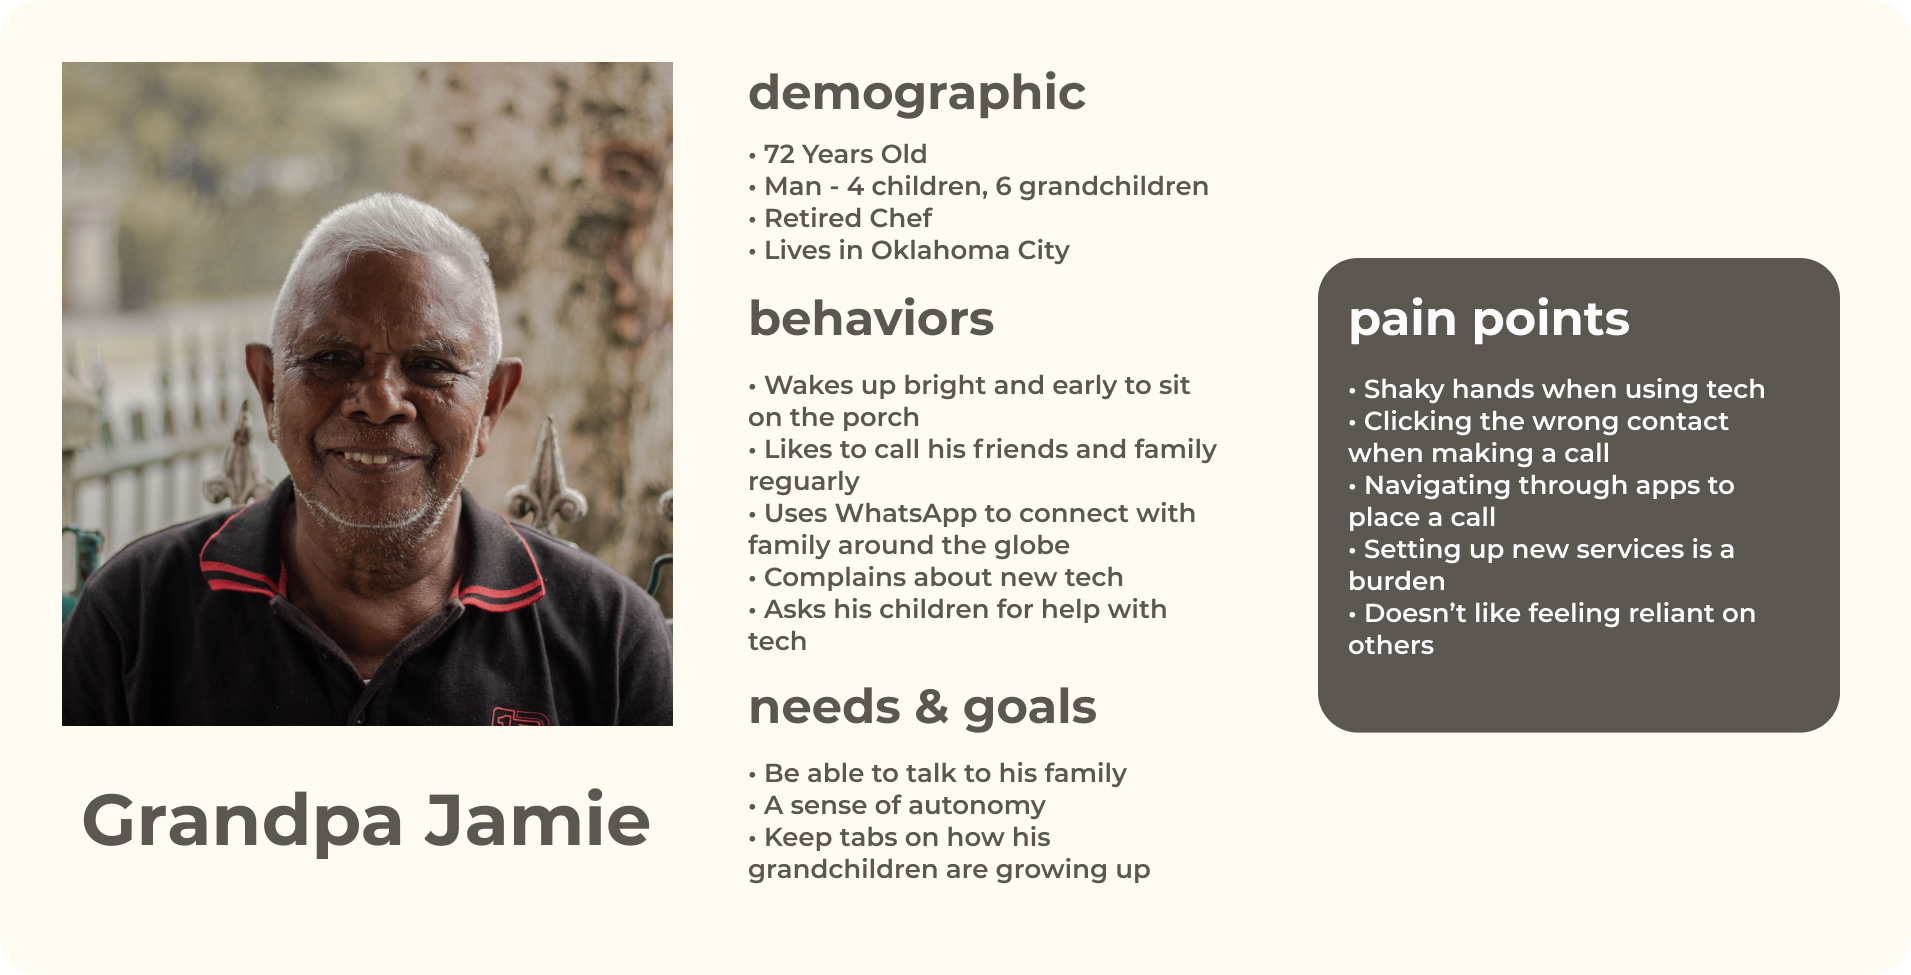 Grandpa Jamie is the primary persona for SquareFace